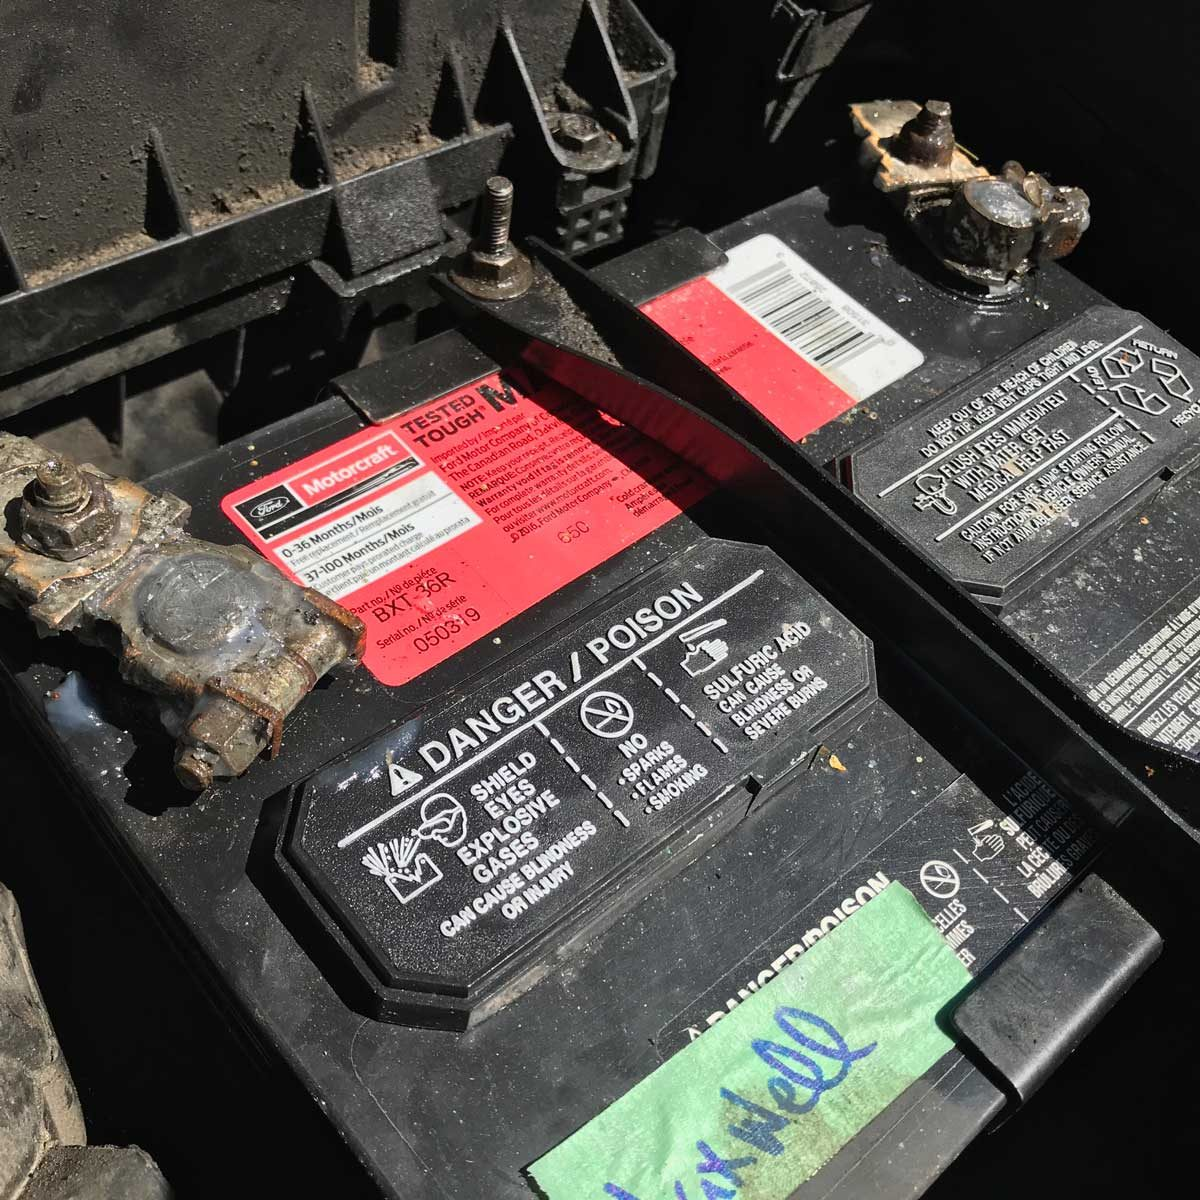 How to test a car battery: find the battery